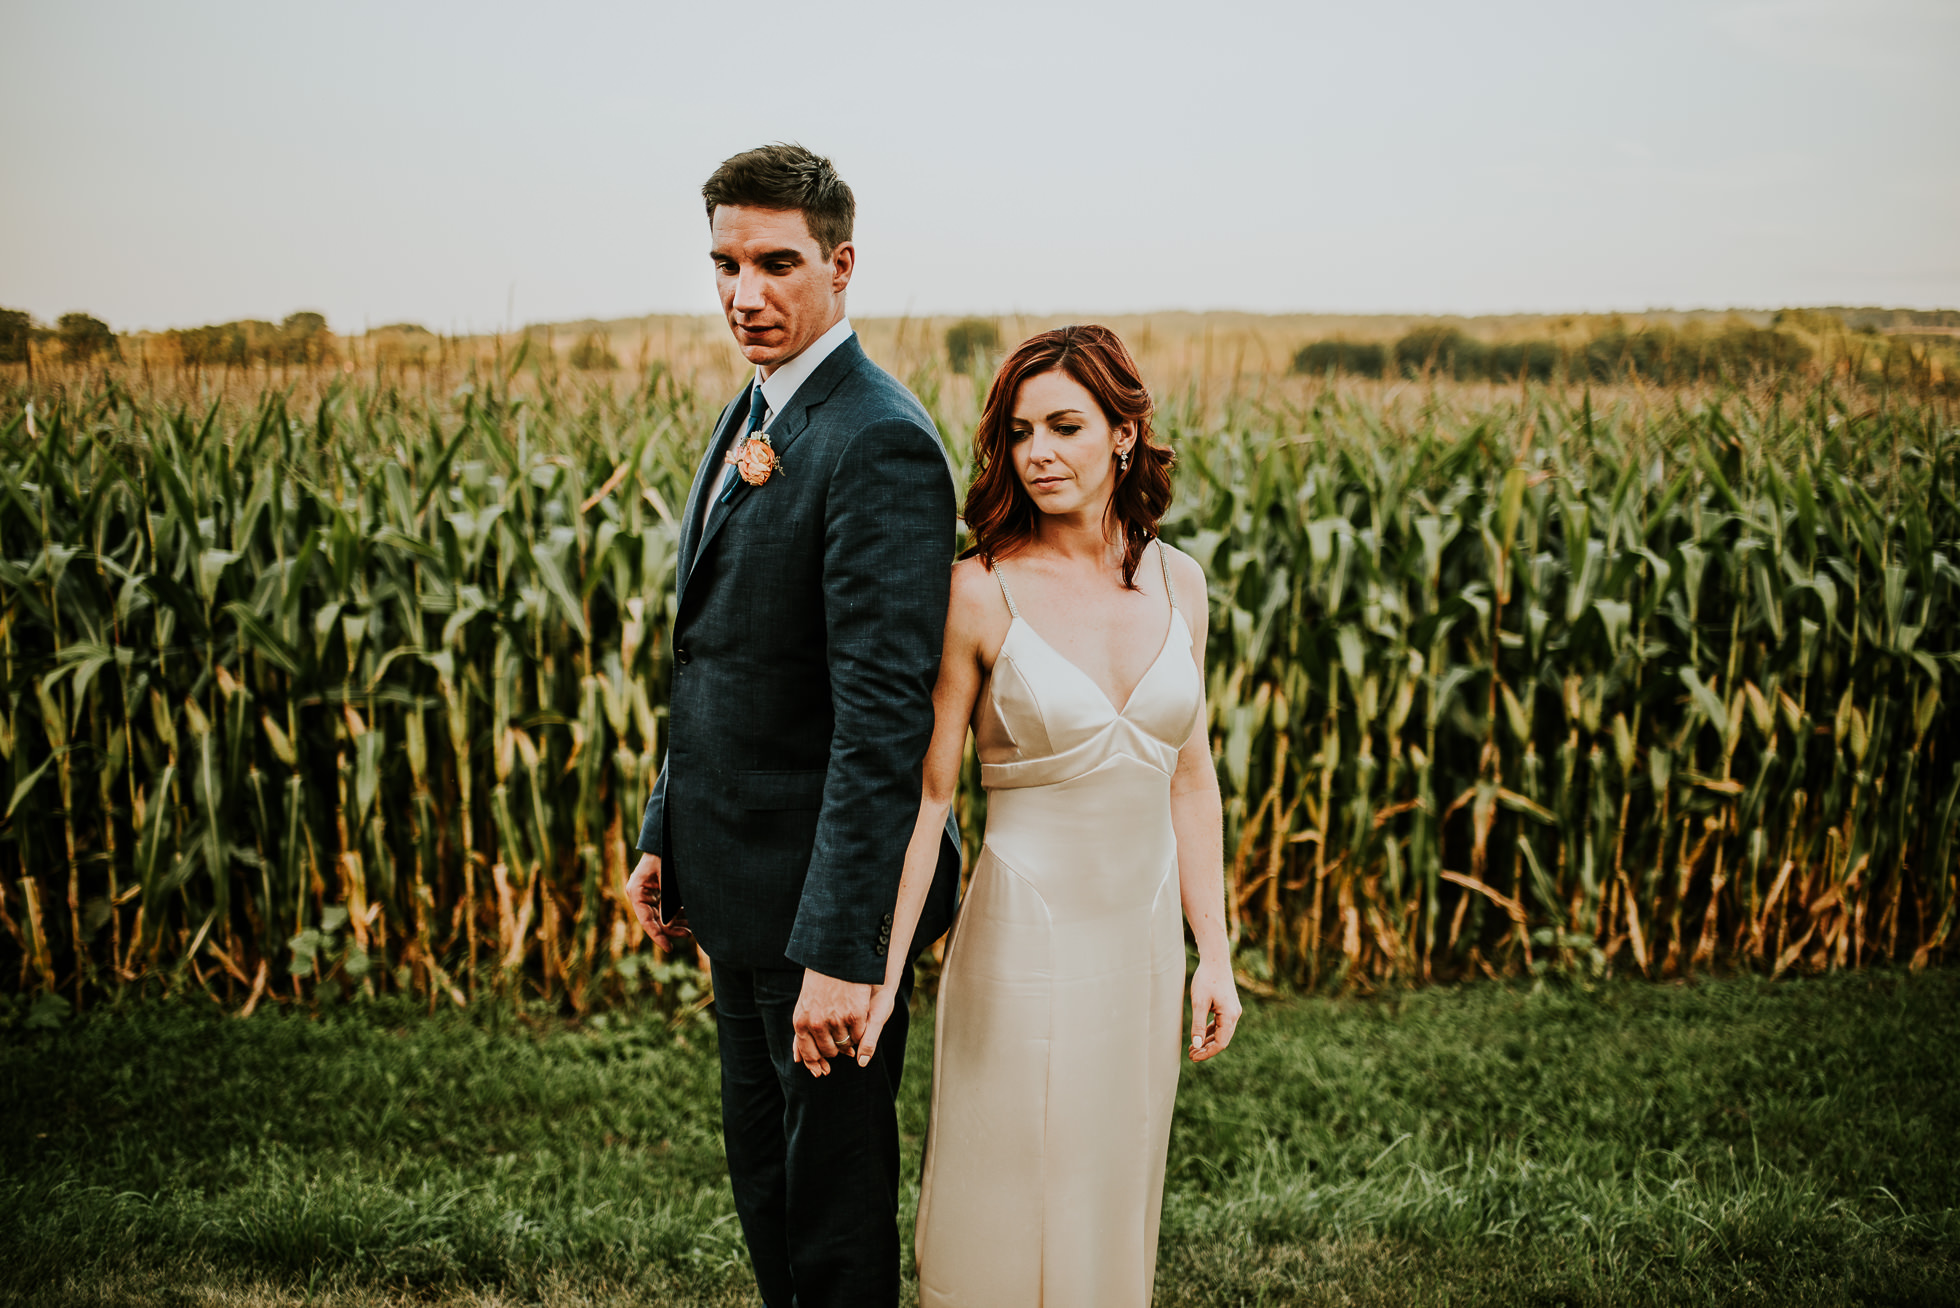 bride and groom holding hands near corn field at olde tater barn wedding in central bridge, ny photographed by traverse the tides